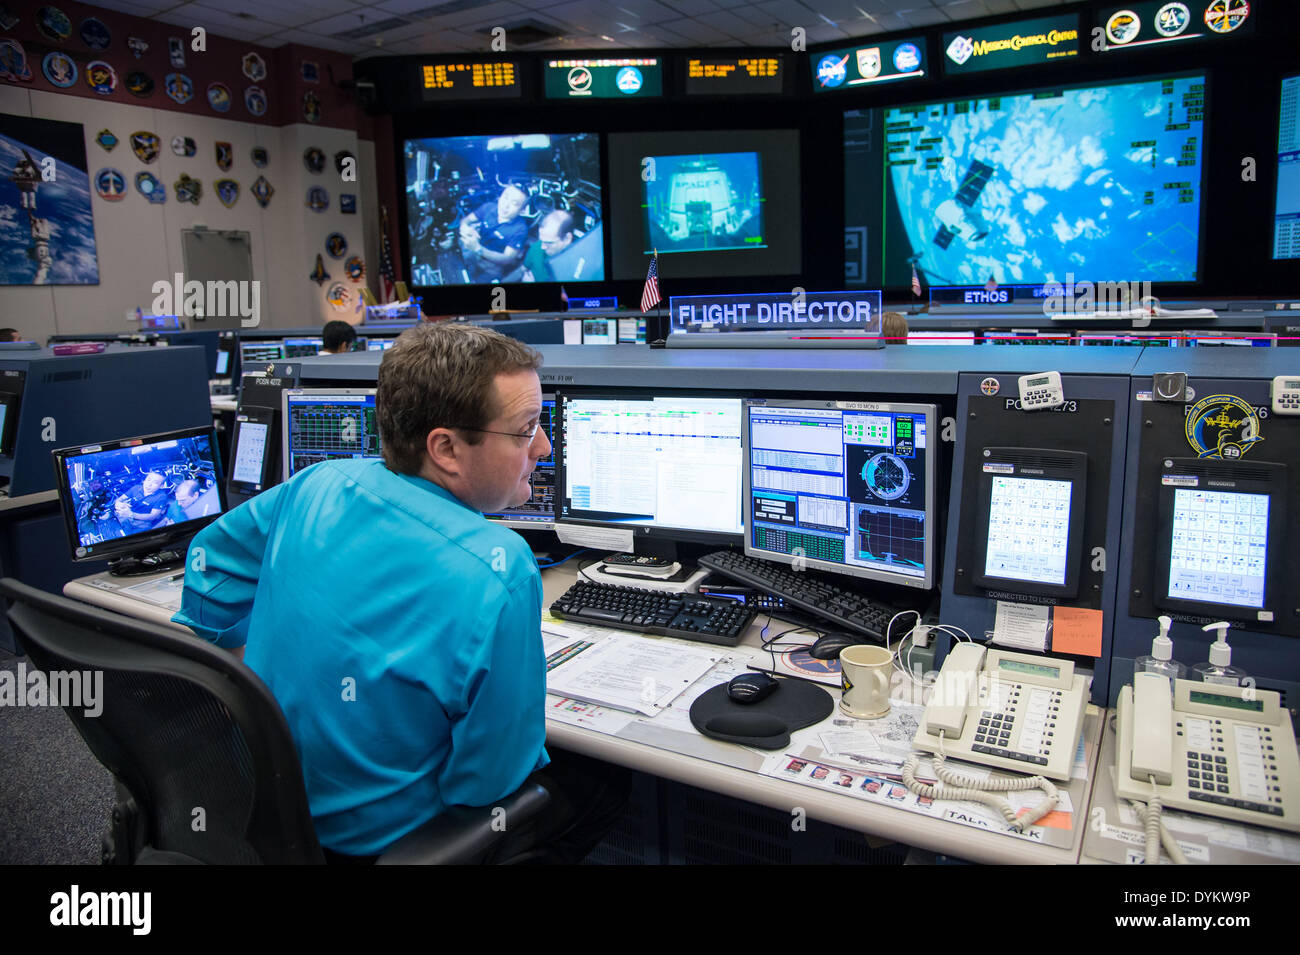 NASA Flight Director Matt Abbott monitors the SpaceX Dragon capsule cargo rendezvous and grappling with the International Space Station from the Mission Control Center space station flight control room April 20, 2014 in Houston, Texas. - Stock Image